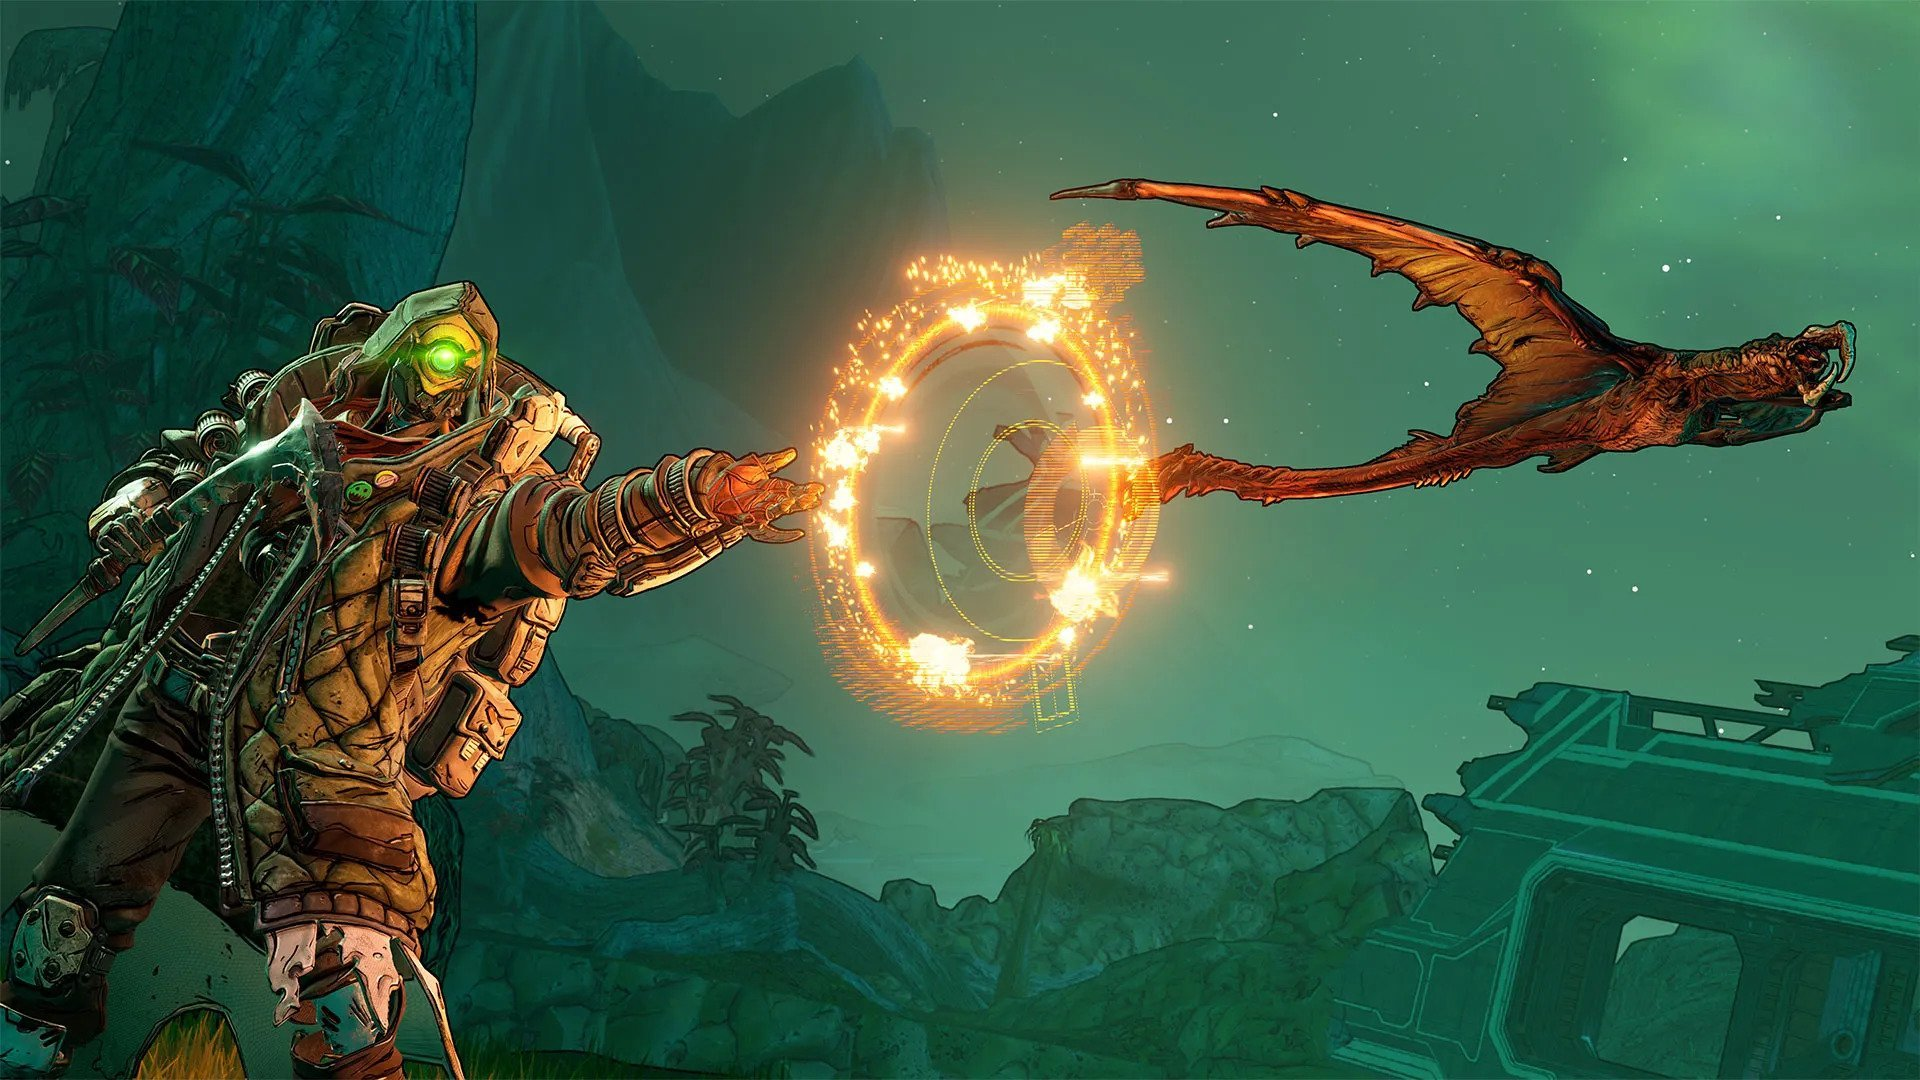 New Borderlands 3 patch buffs pets across the board, FL4K is spared a nerf (this time) screenshot